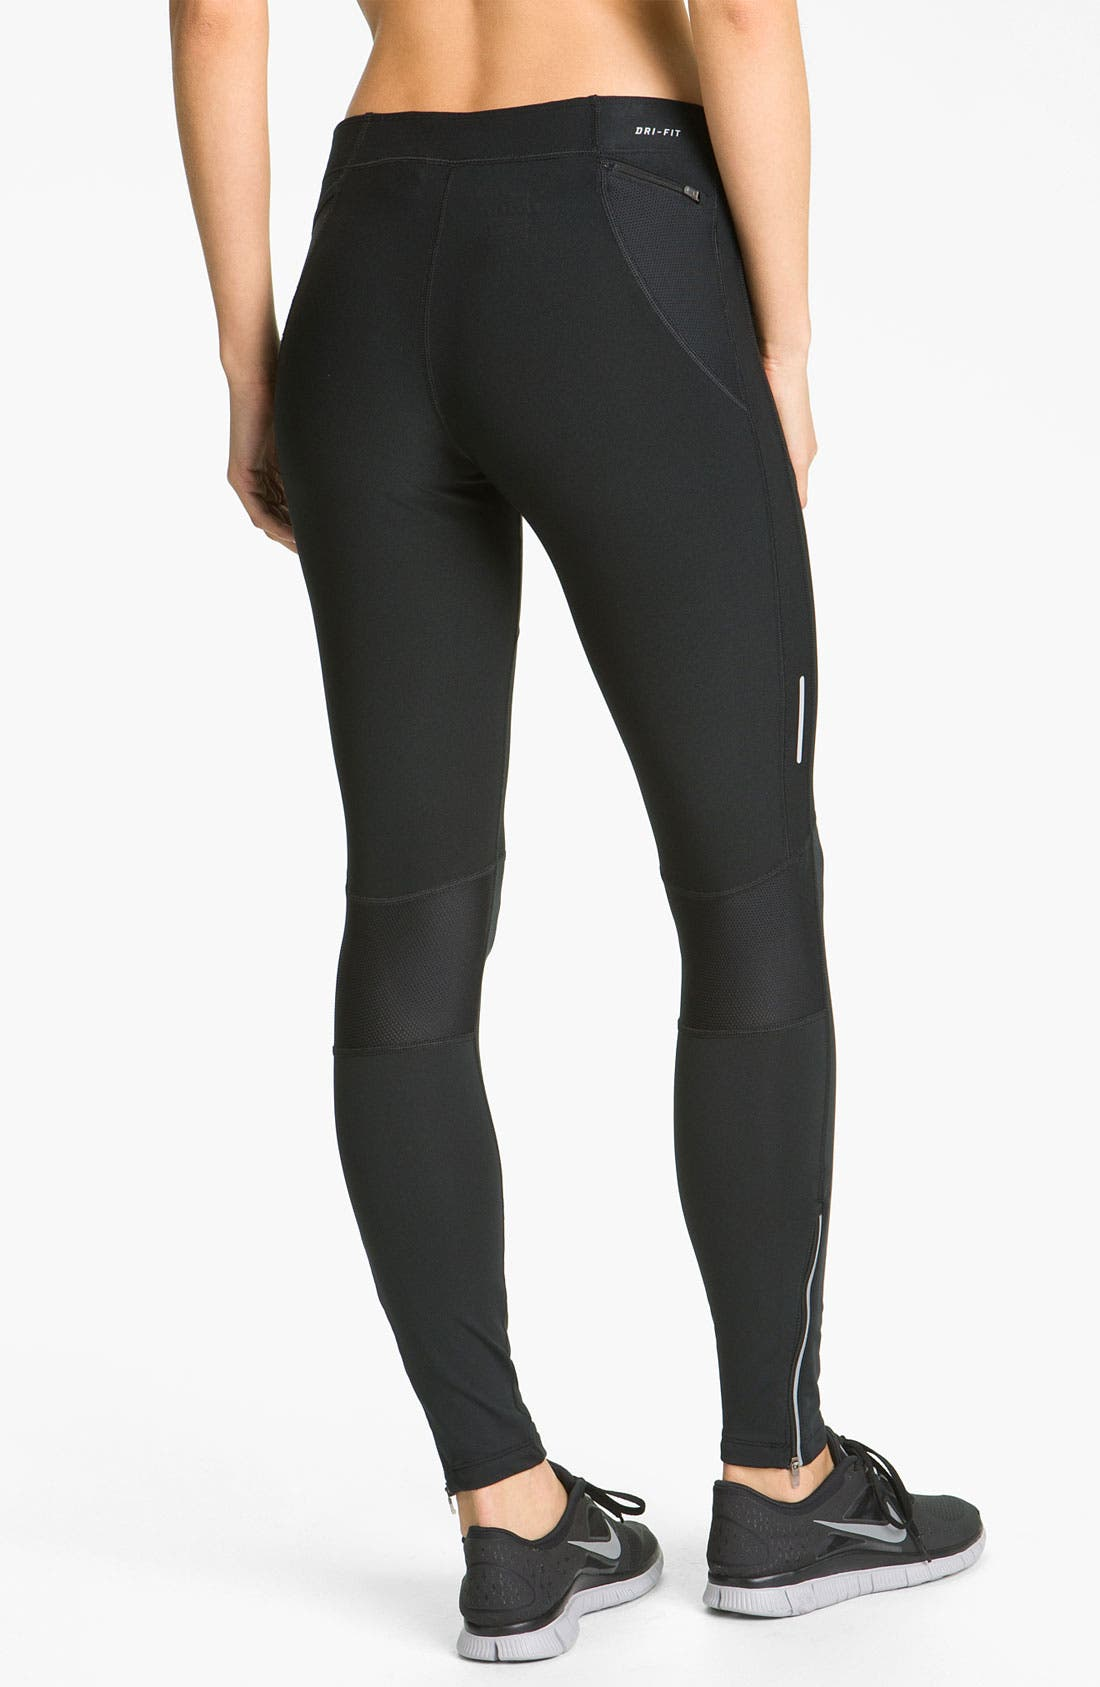 Alternate Image 2  - Nike 'Tech' Running Tights